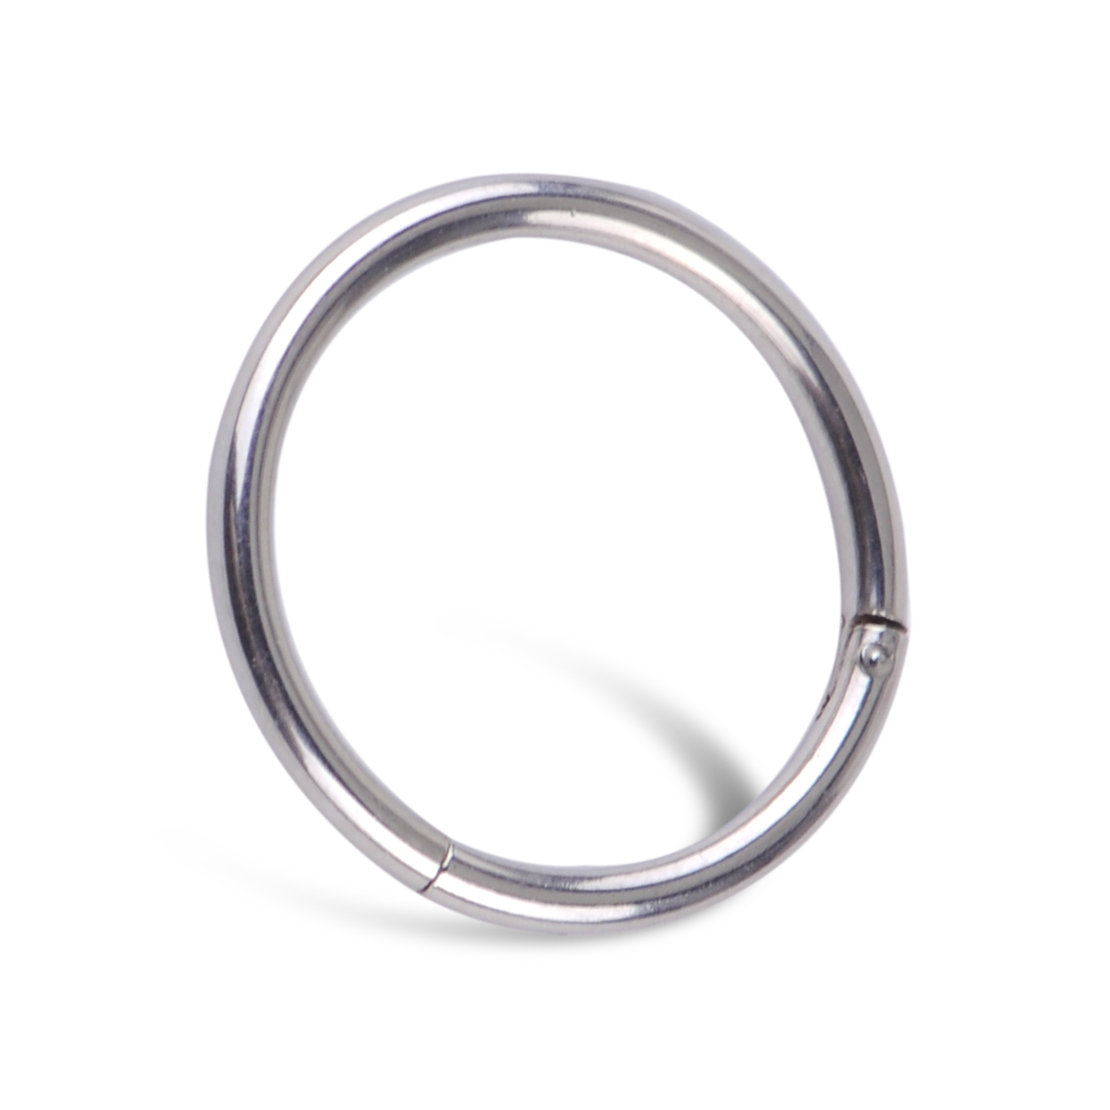 Sale Steel Hinged Segment Ring Hoop Ear Lip Nose Clicker